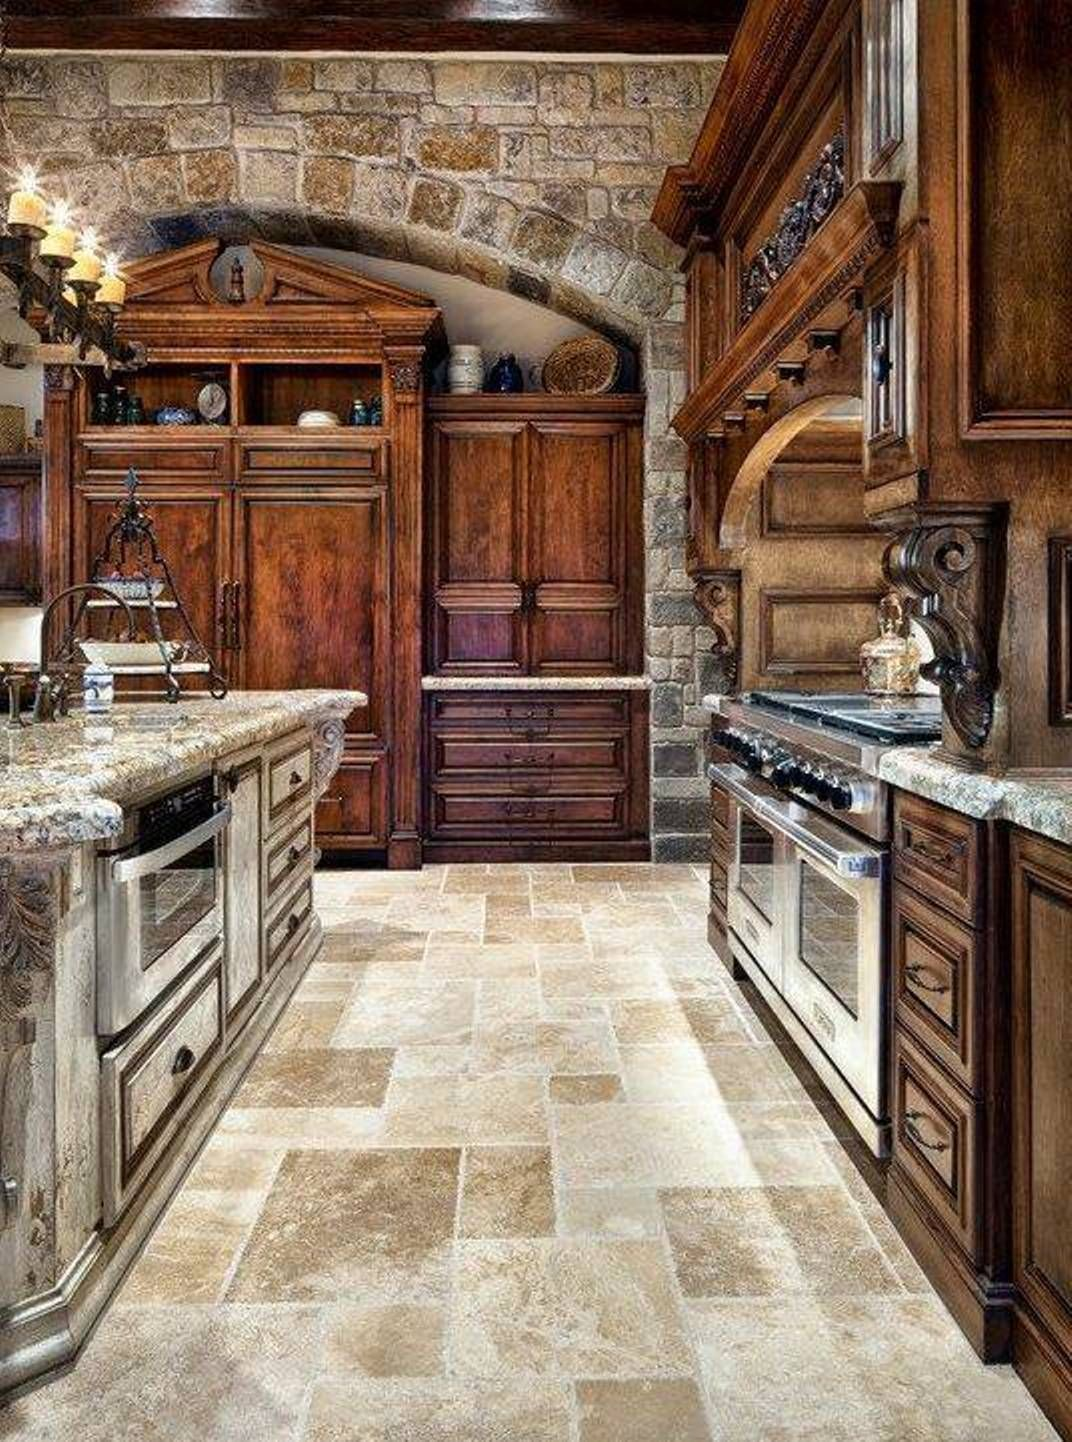 Antique Looking Kitchen Cabinets Old World Looking Kitchens Old World Tuscan Themed